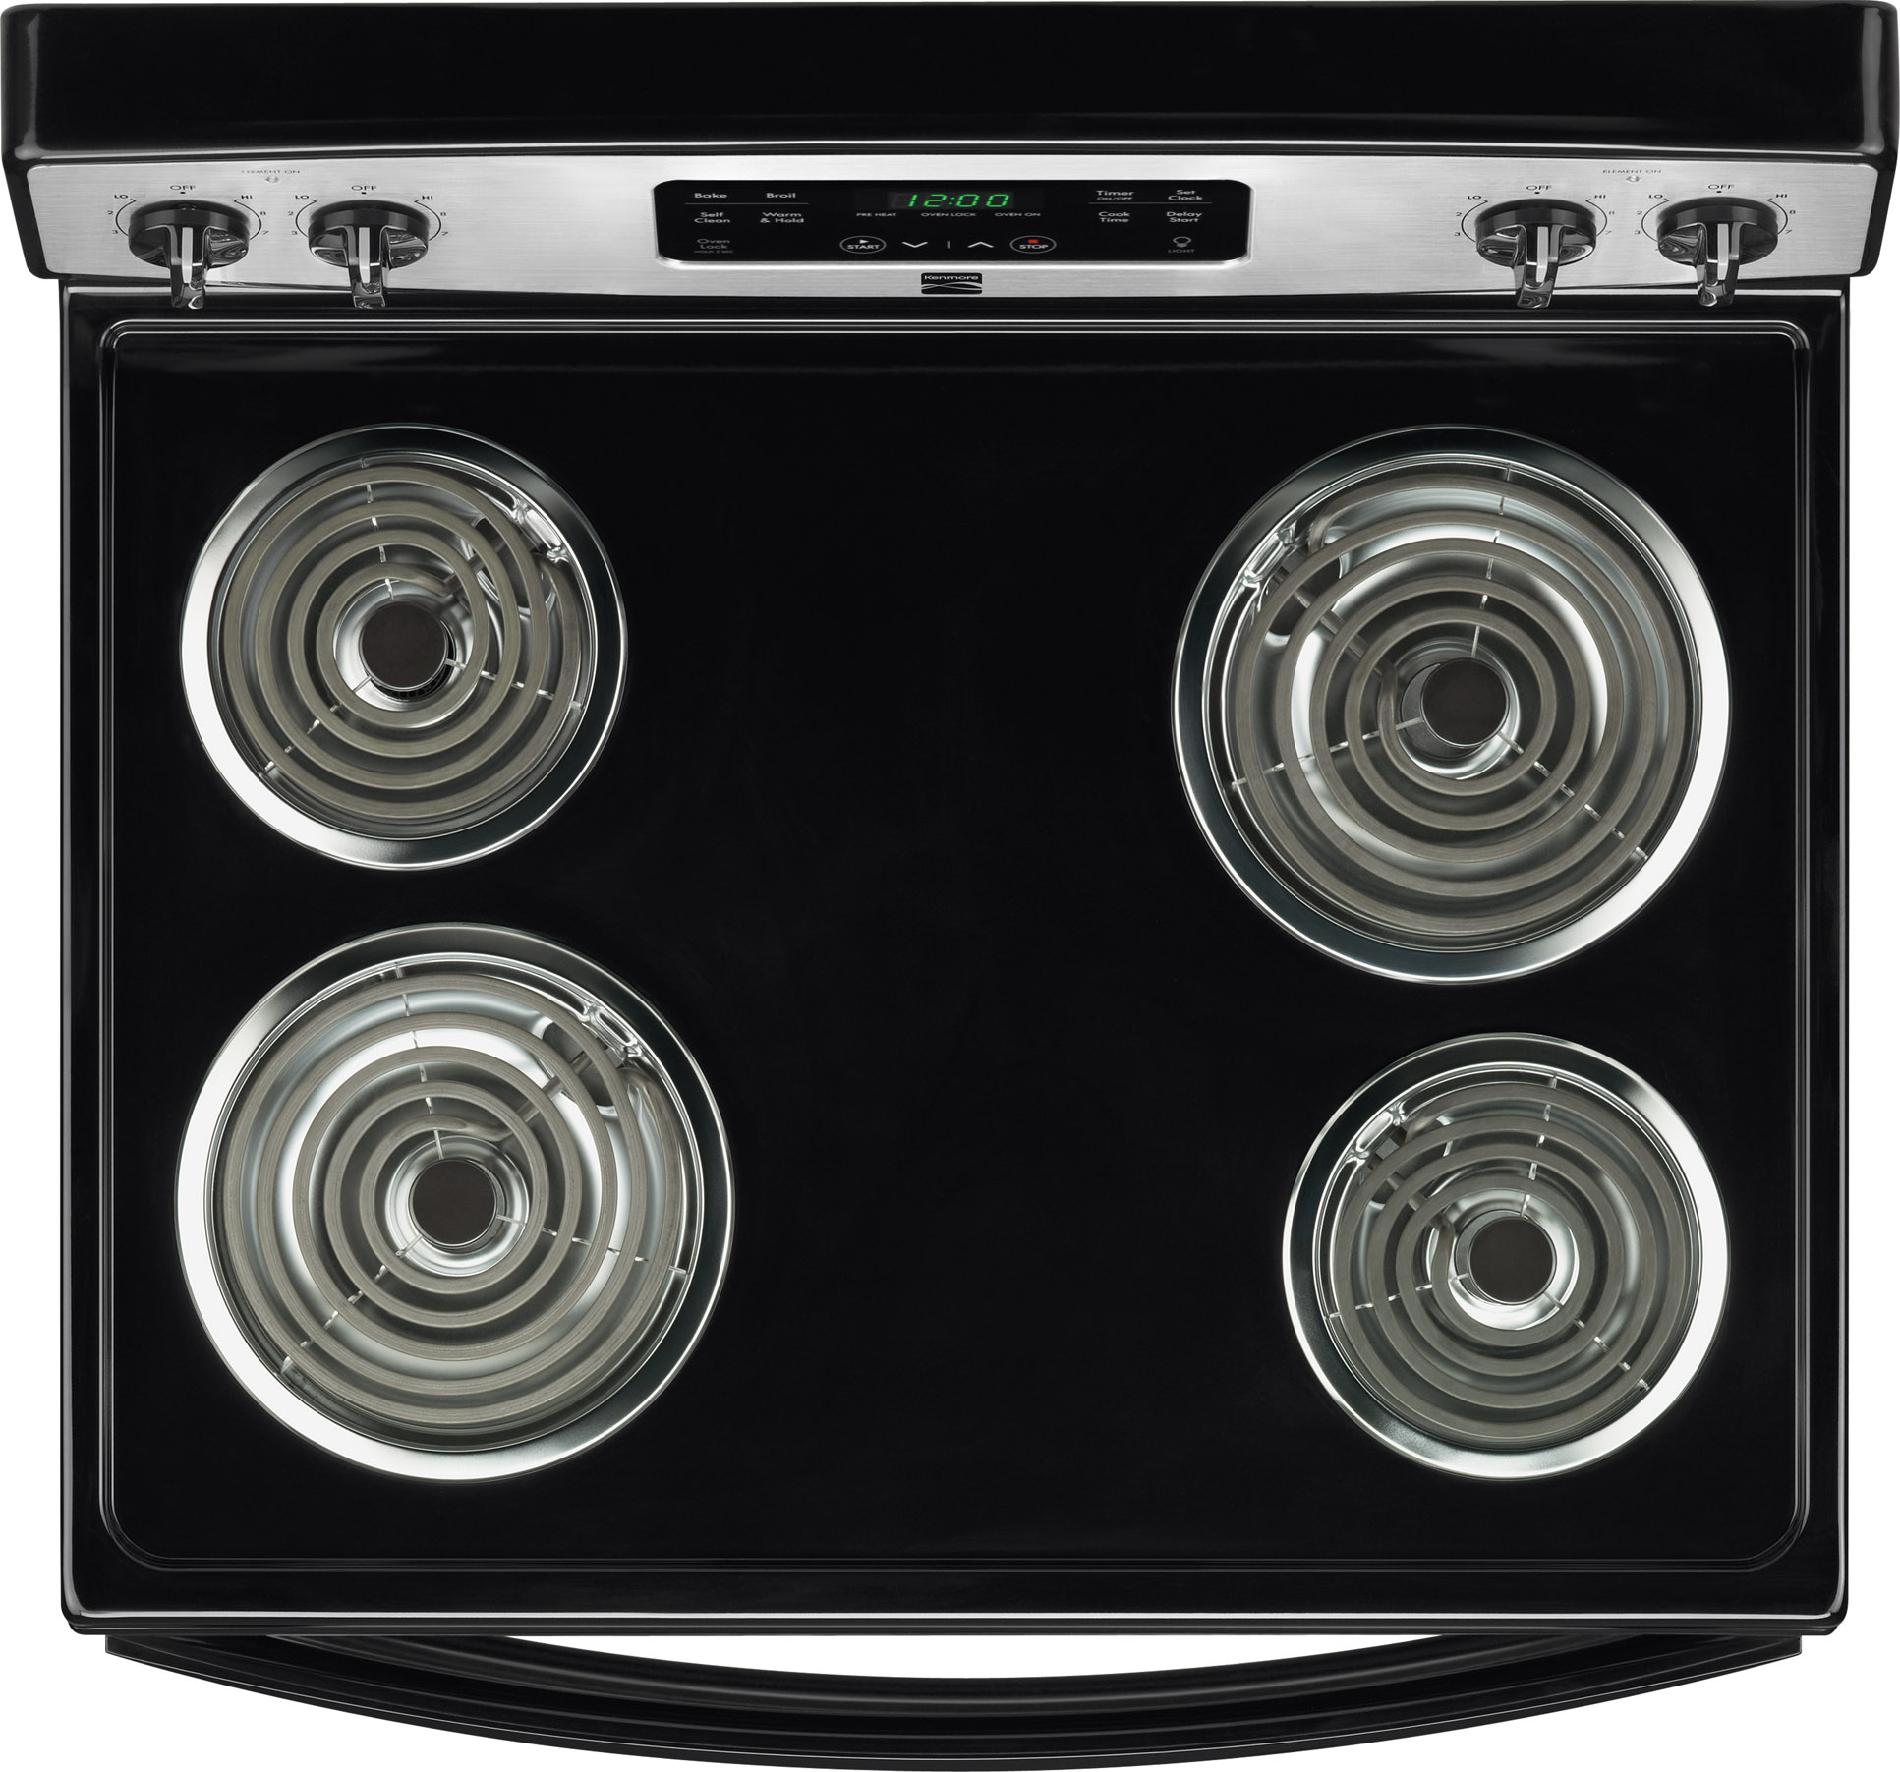 Kenmore 94143 5.3 cu. ft. Electric Range w/ Self-Cleaning Oven - Stainless Steel